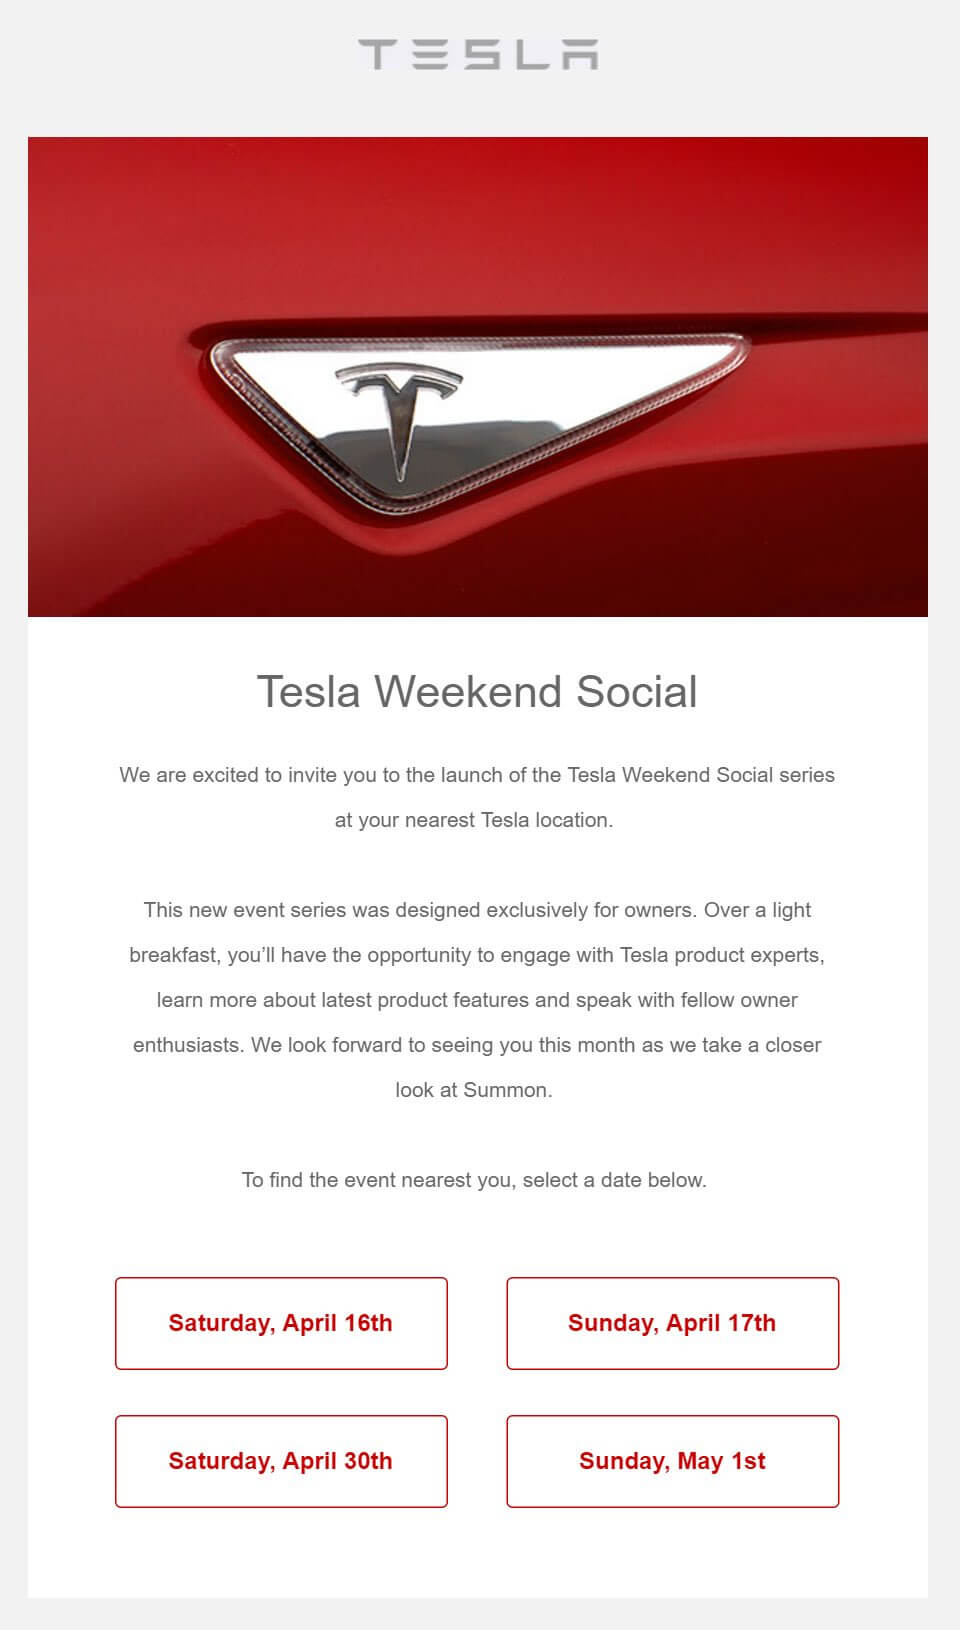 tesla-weekend-social-event